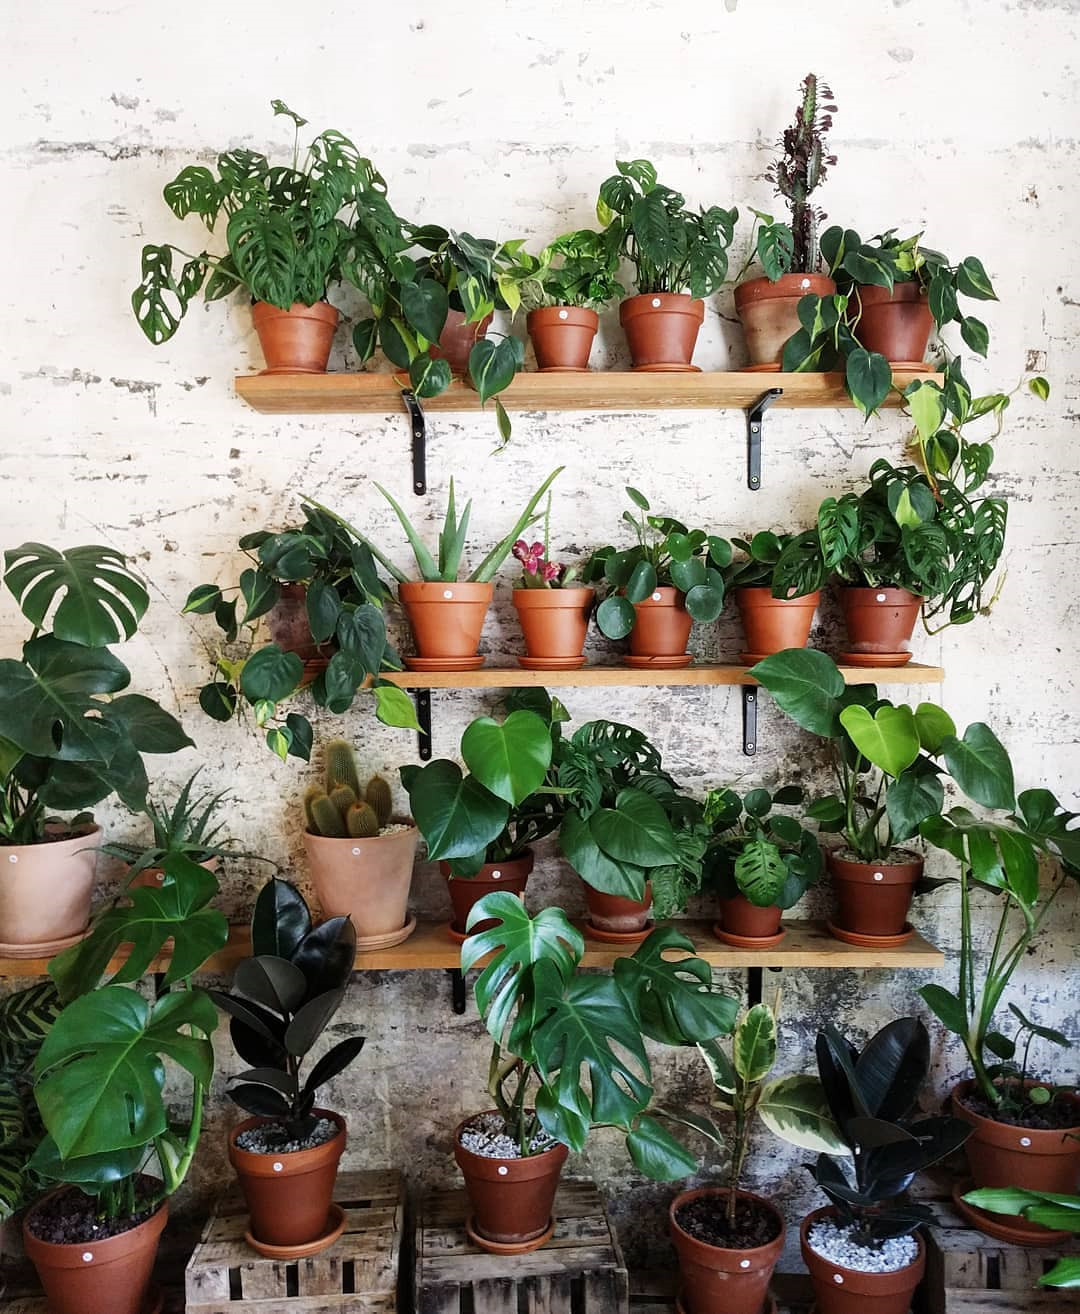 70+ Beautiful Pots and Planters to Beautify Your Small Spaces